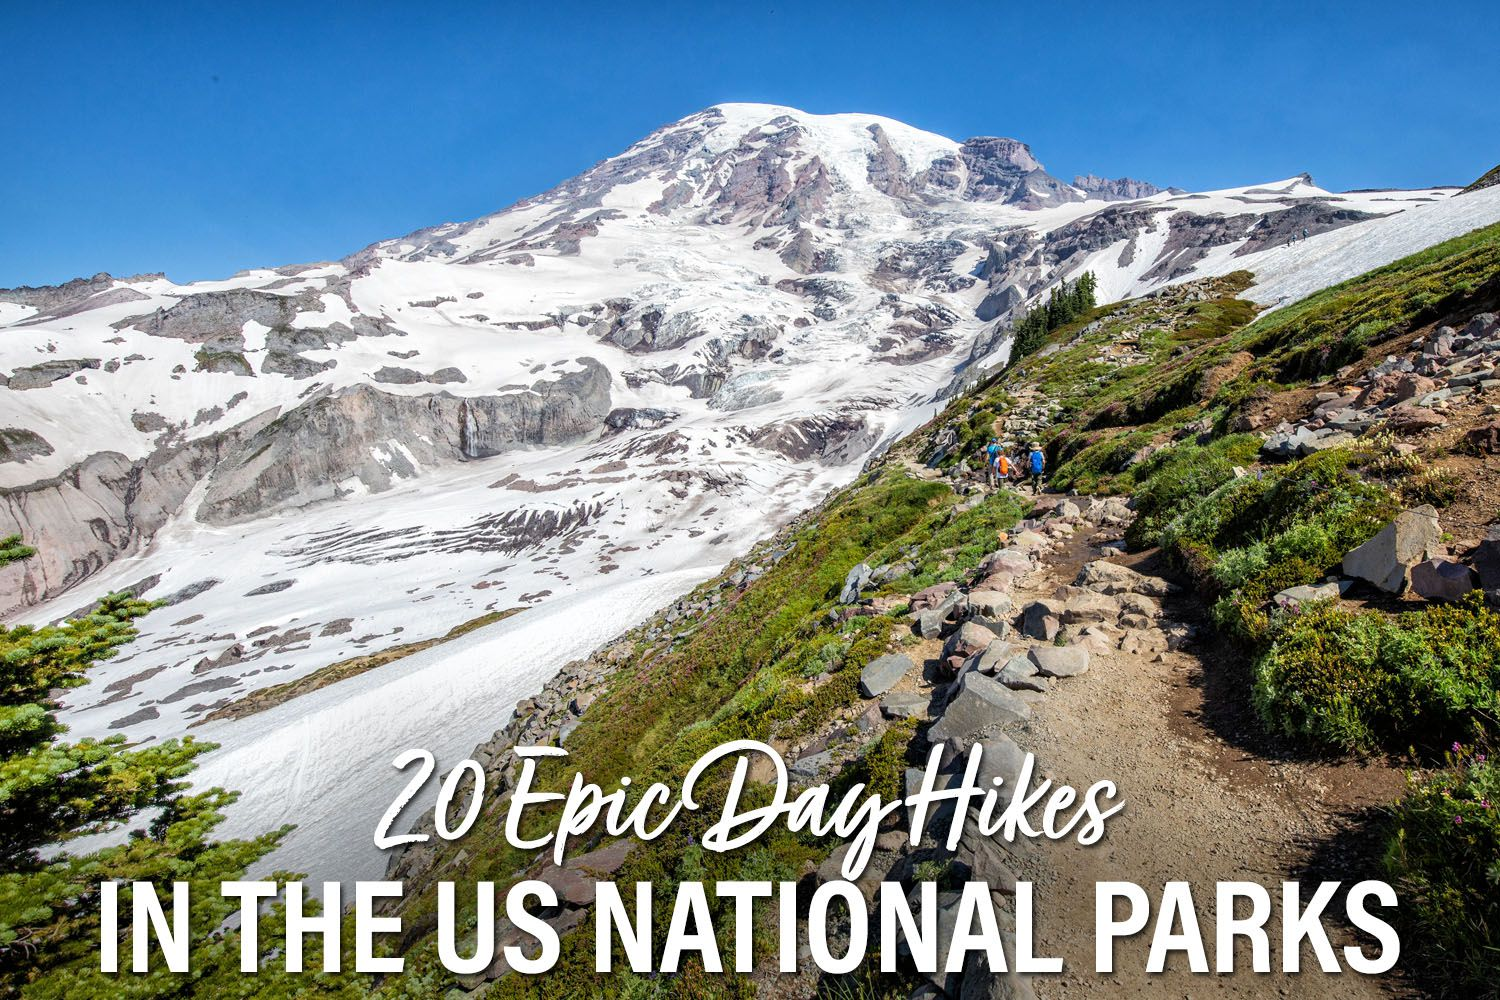 Epic Day Hikes in the National Parks